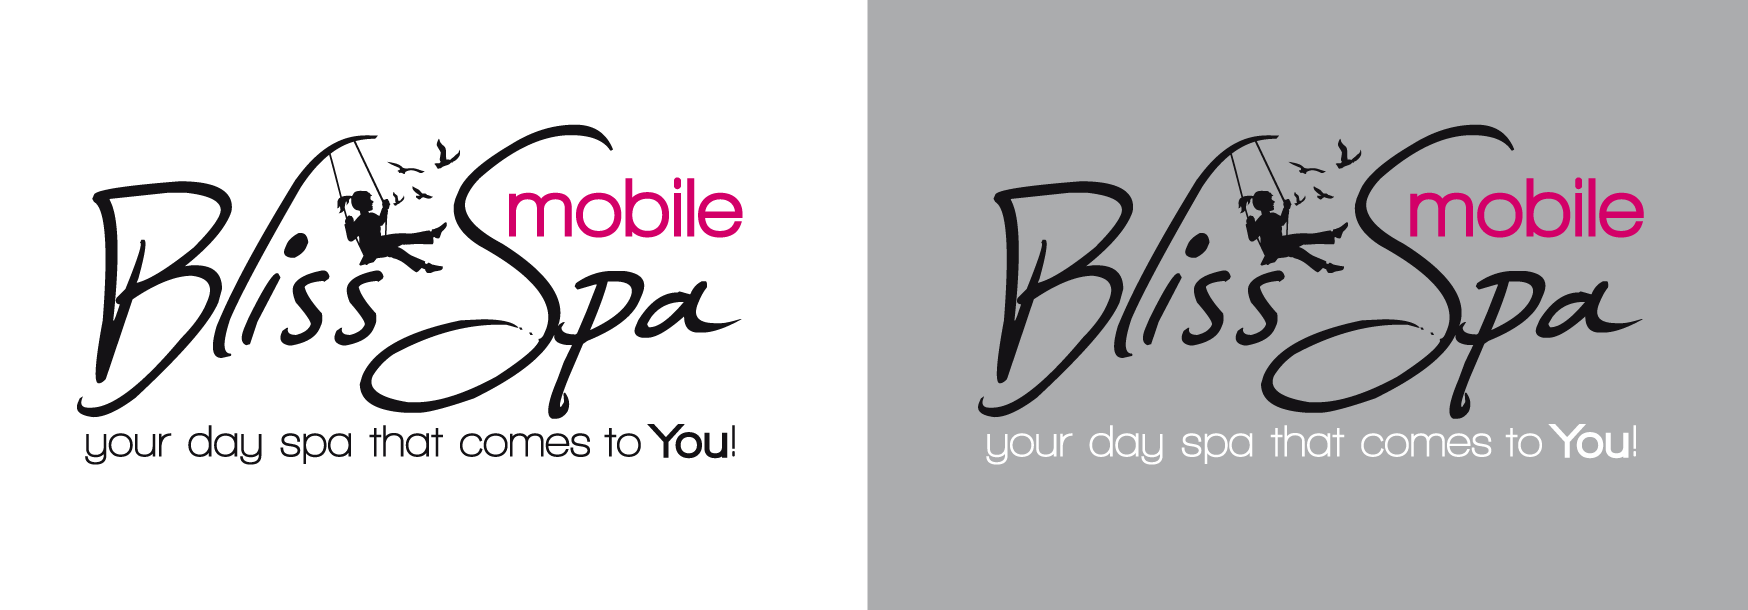 Logo Design by luna - Entry No. 53 in the Logo Design Contest New Logo Design for Bliss Spa Mobile.